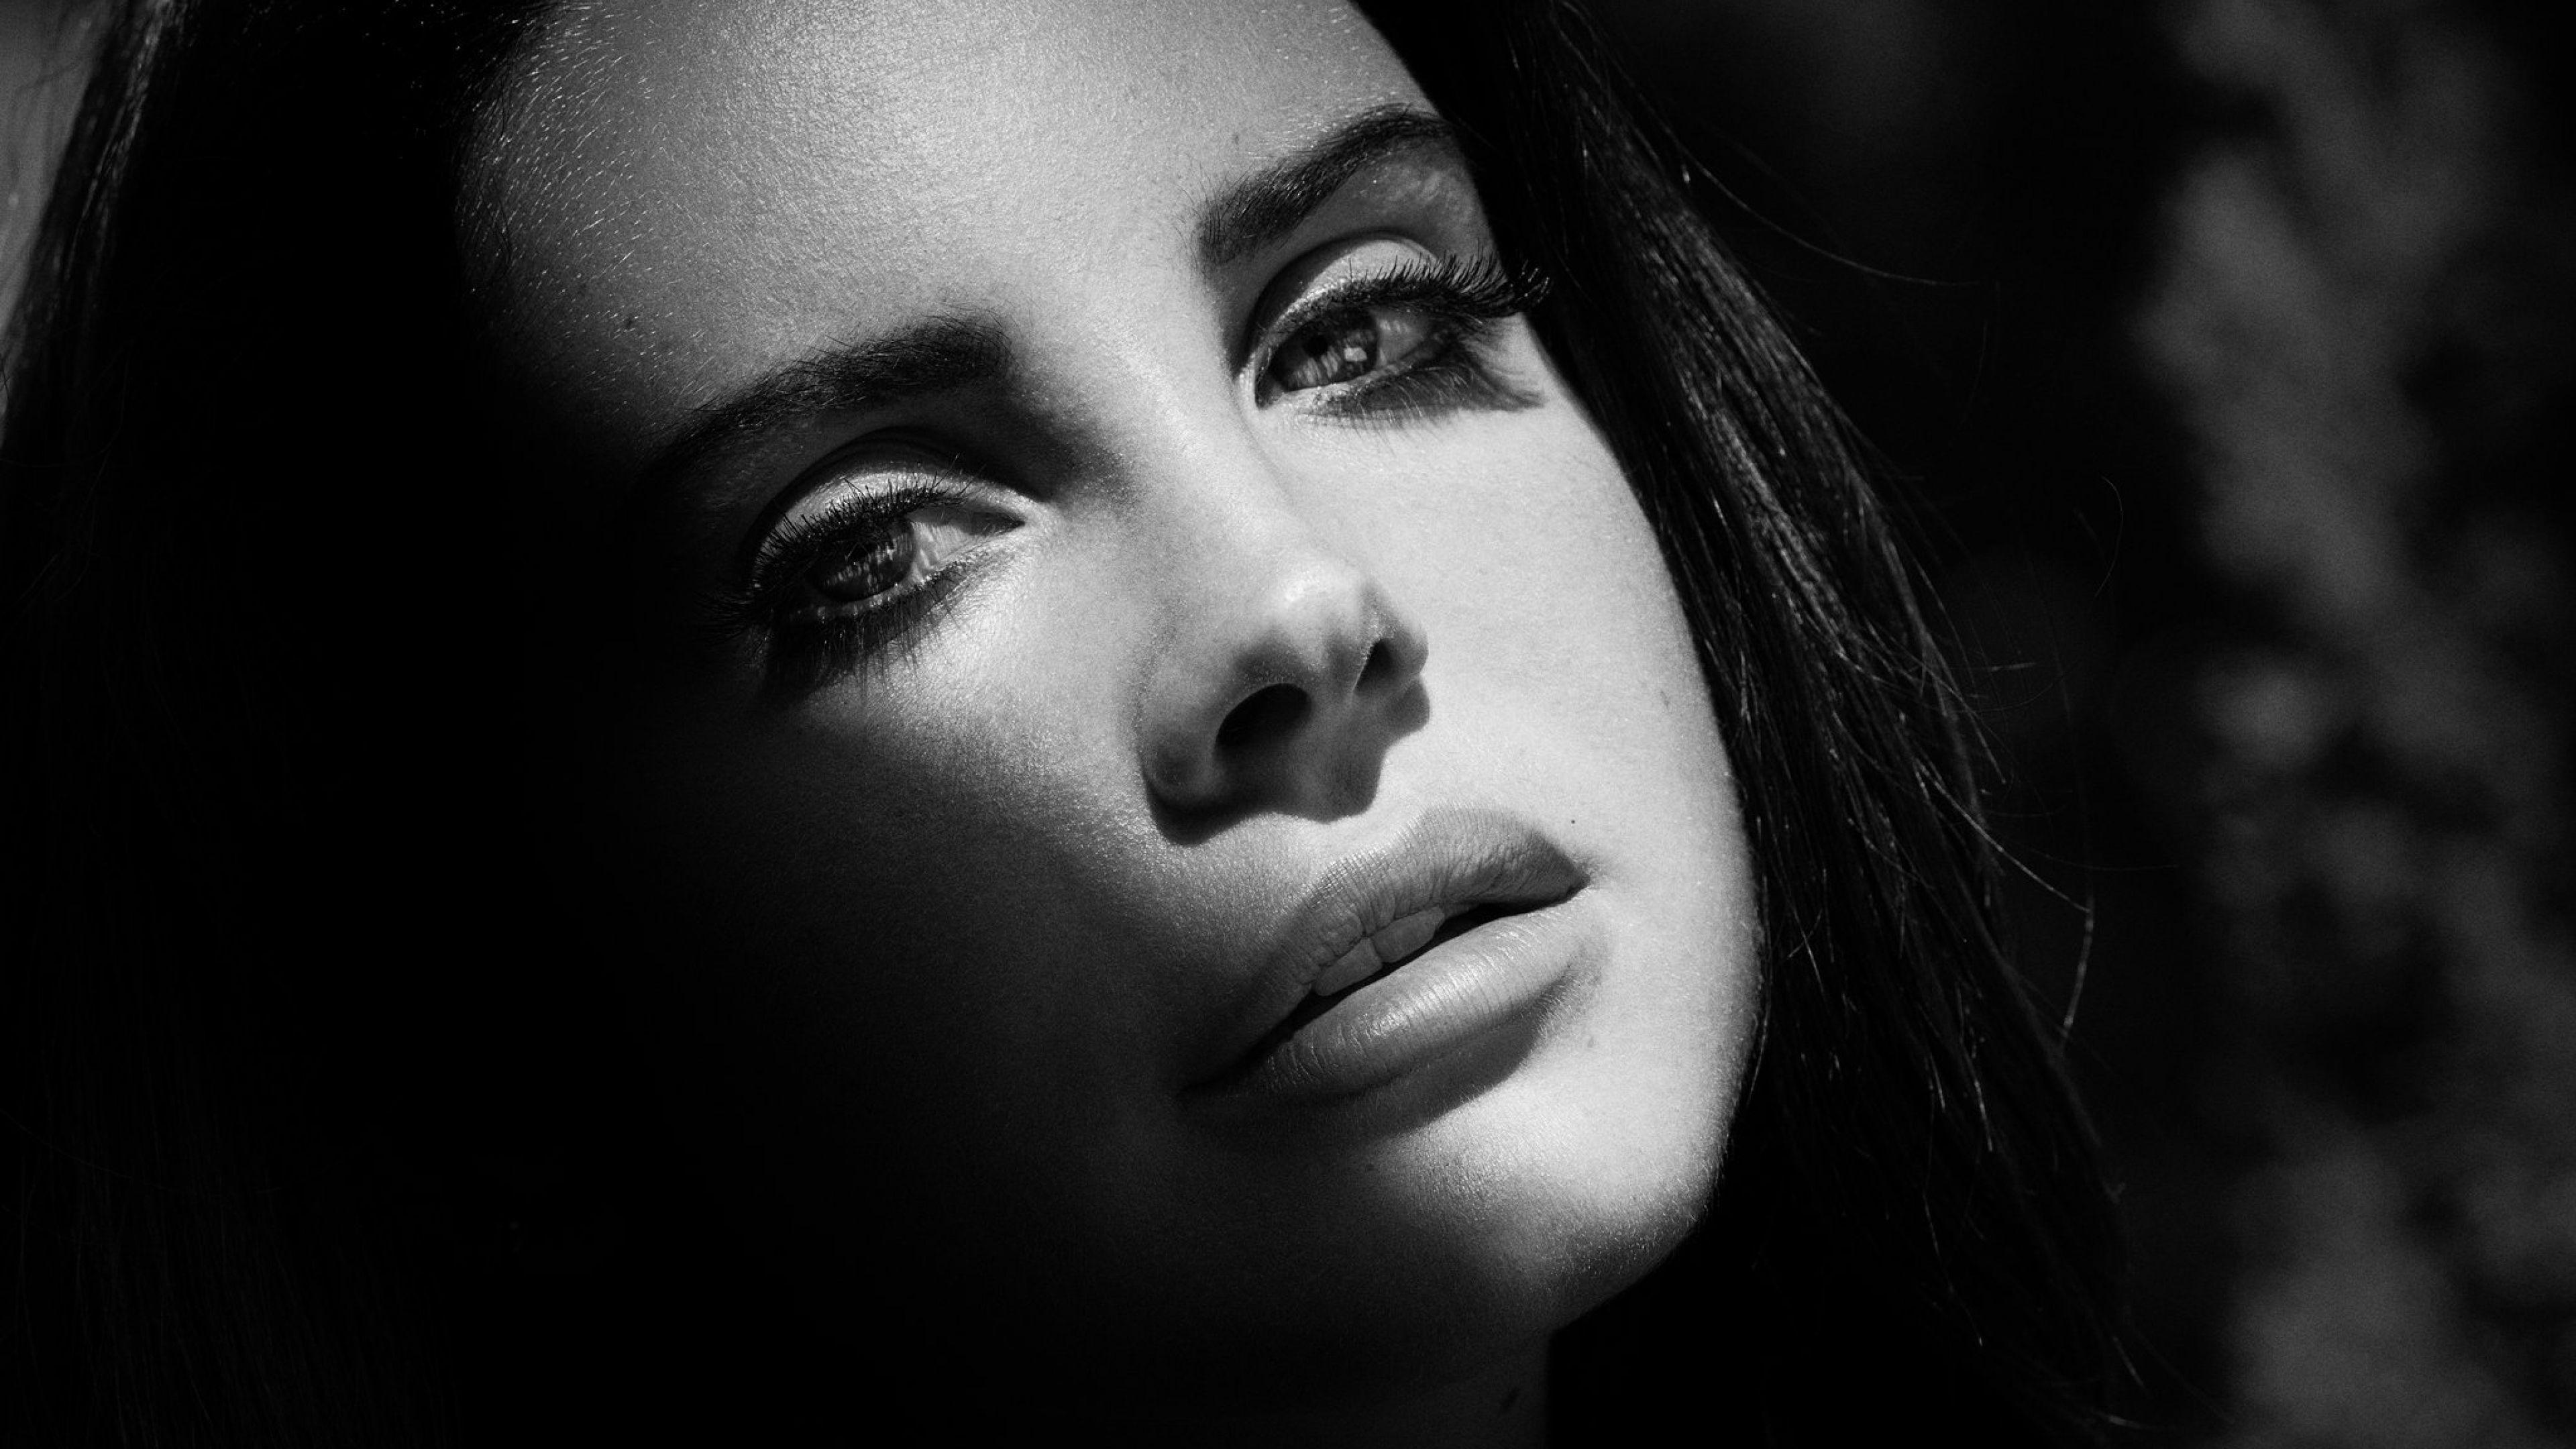 Lana Del Rey Backgrounds Download Free | HD Wallpapers .